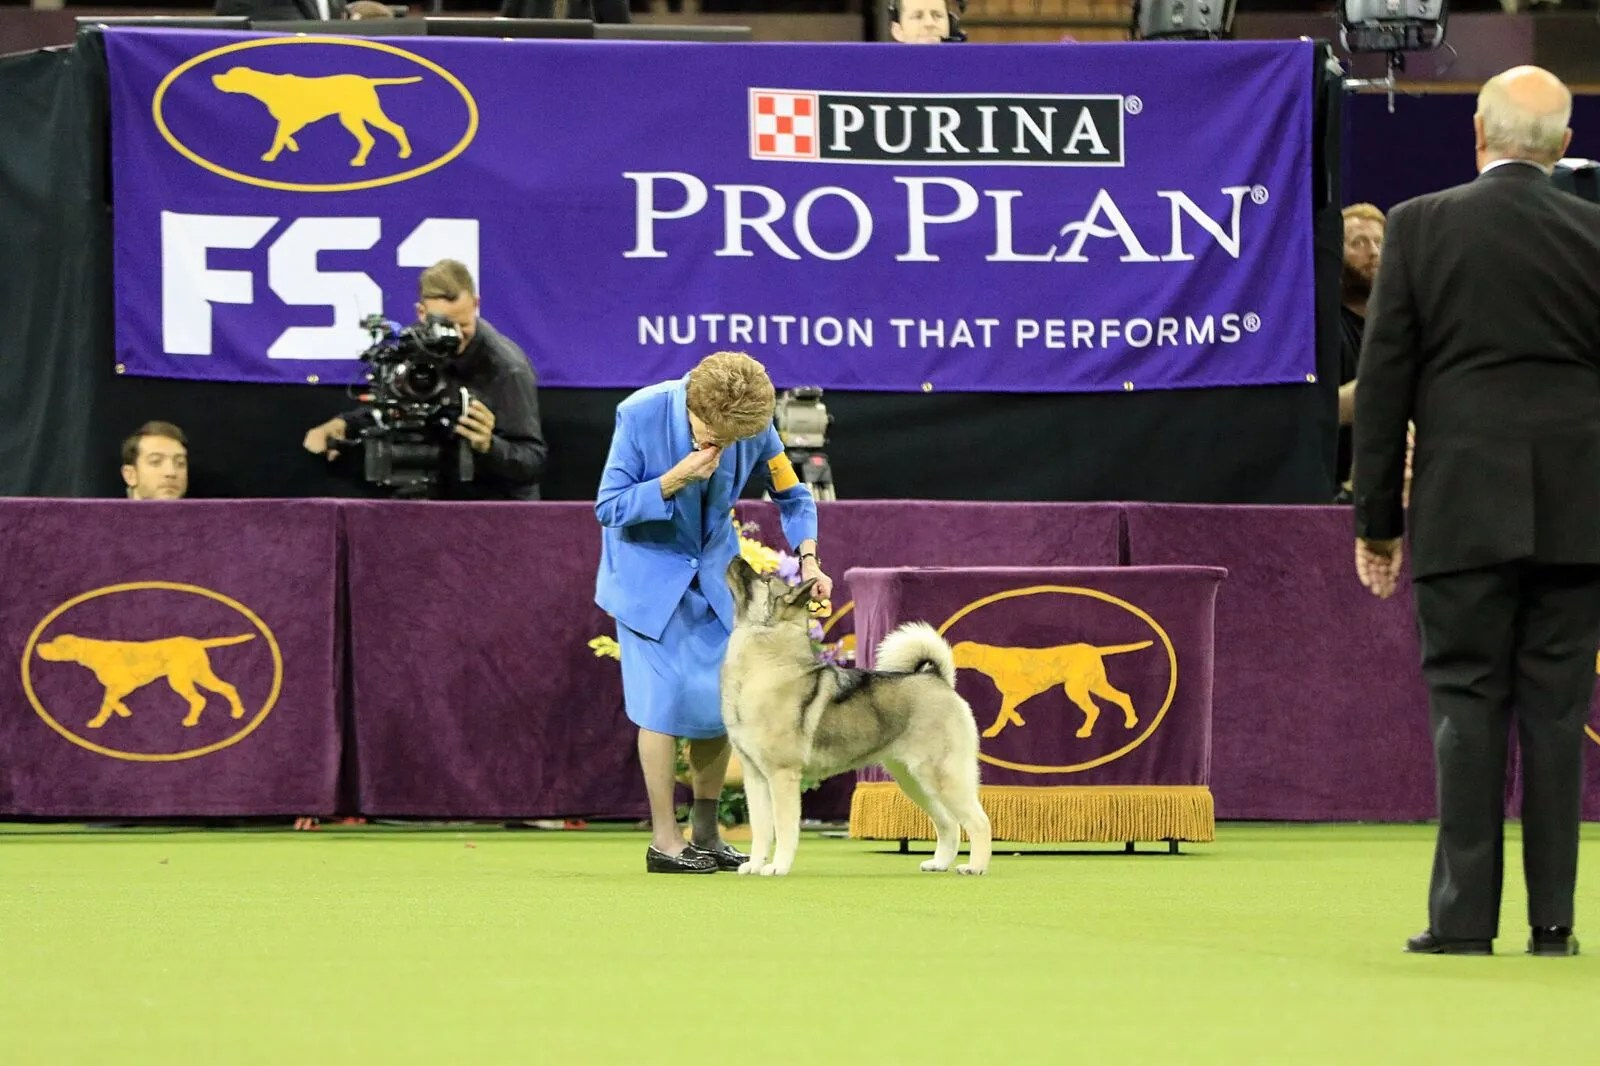 Patricia Trotter at the 2017 Westminster Kennel Club Dog Show.